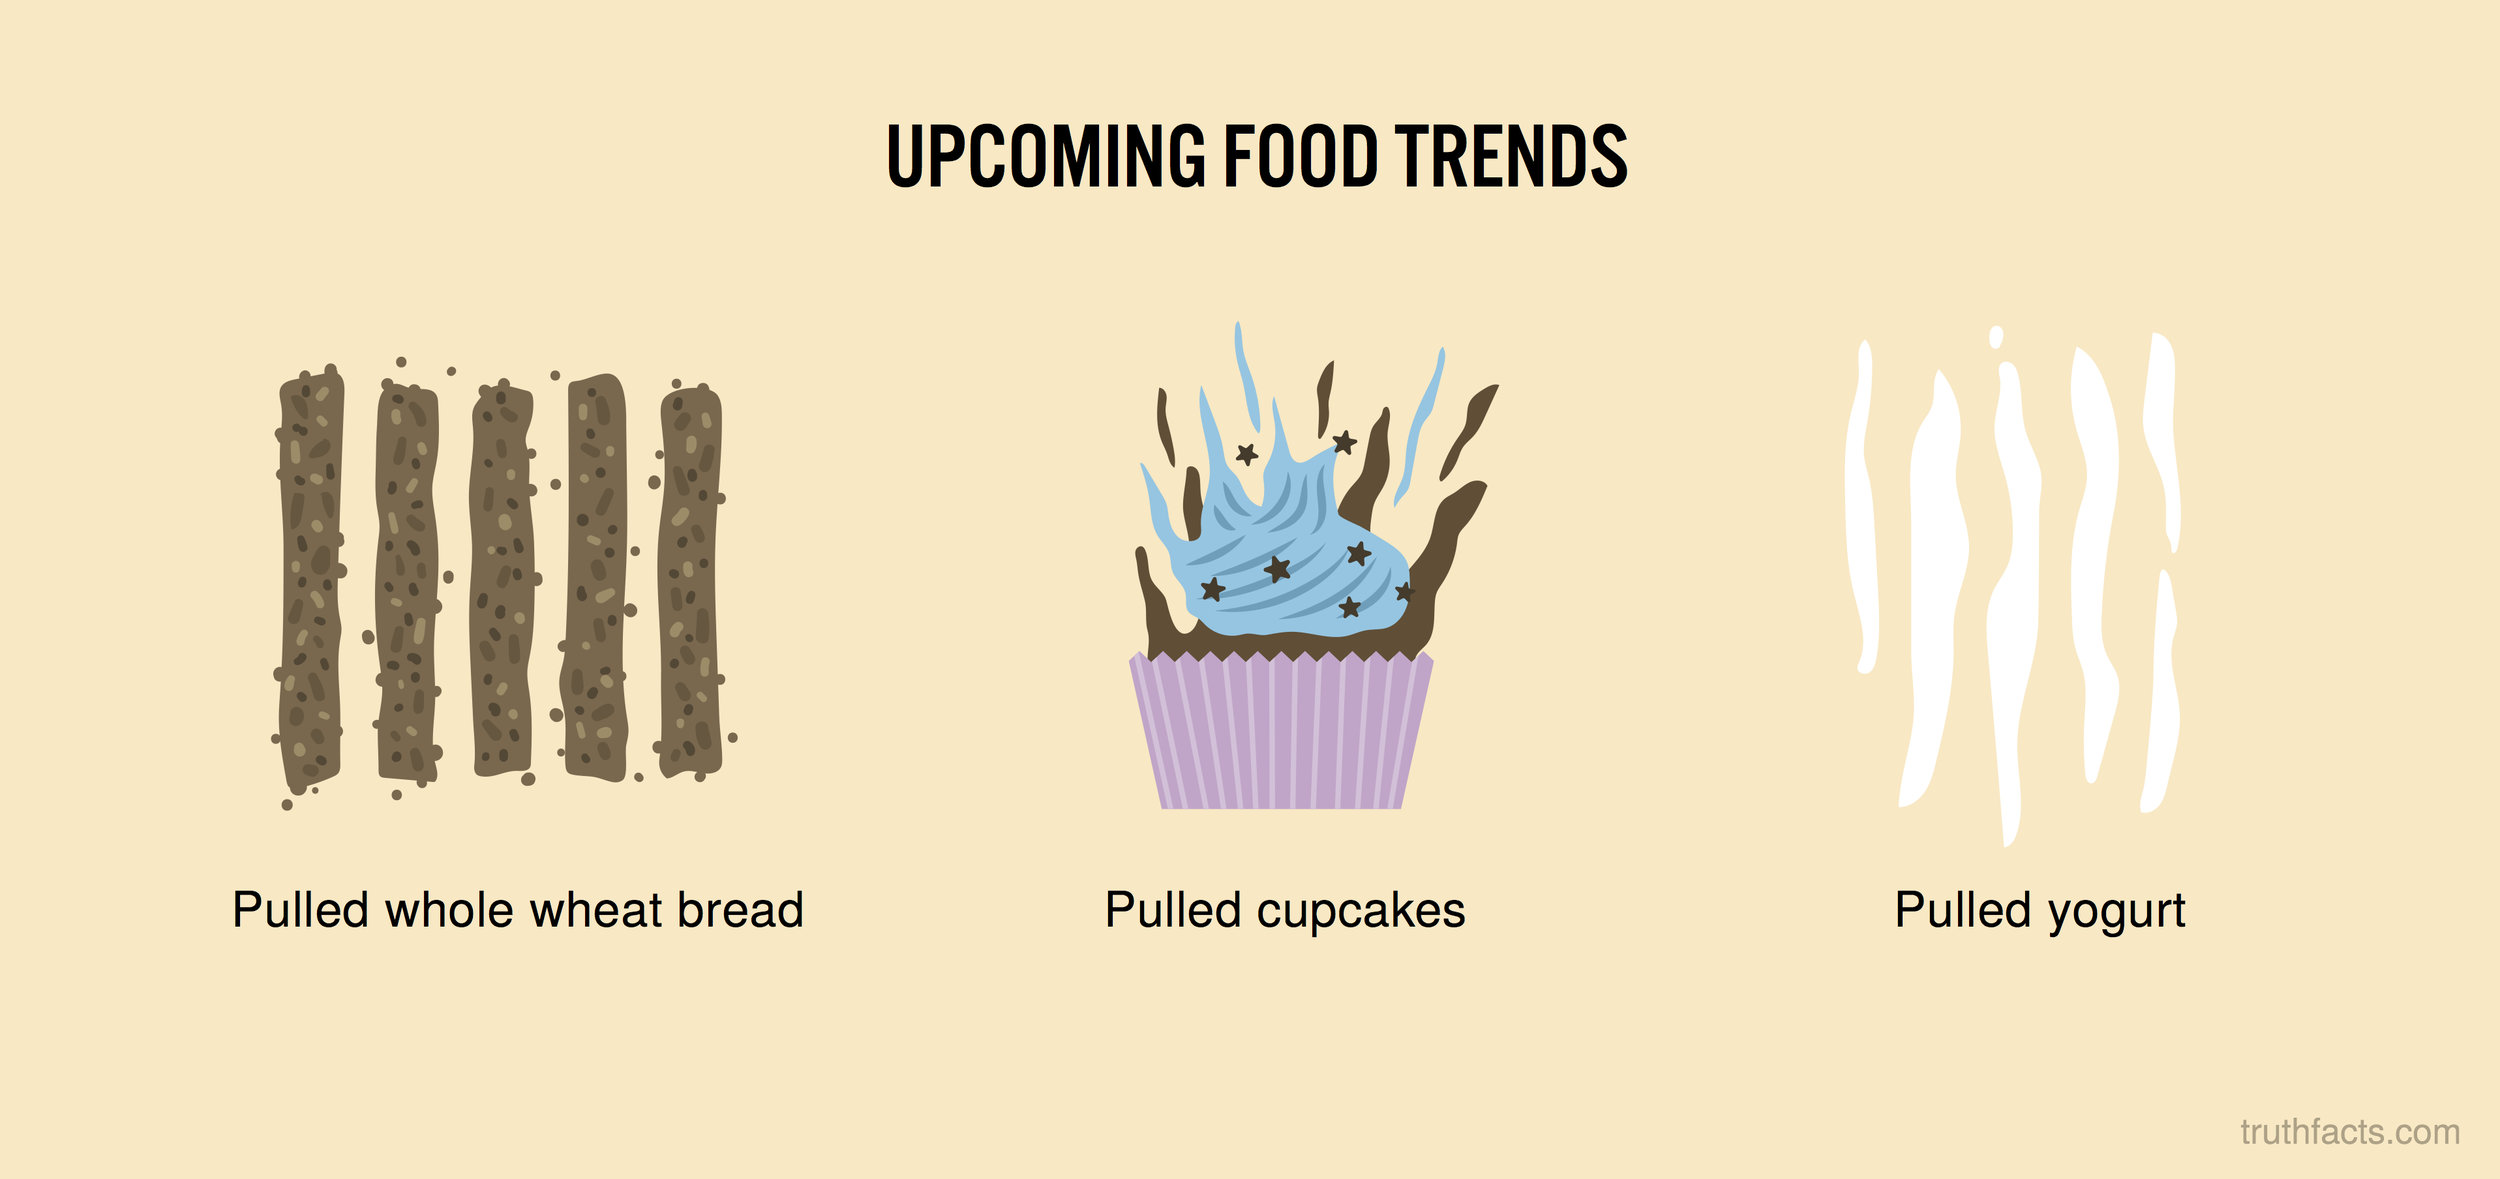 Upcoming food trends